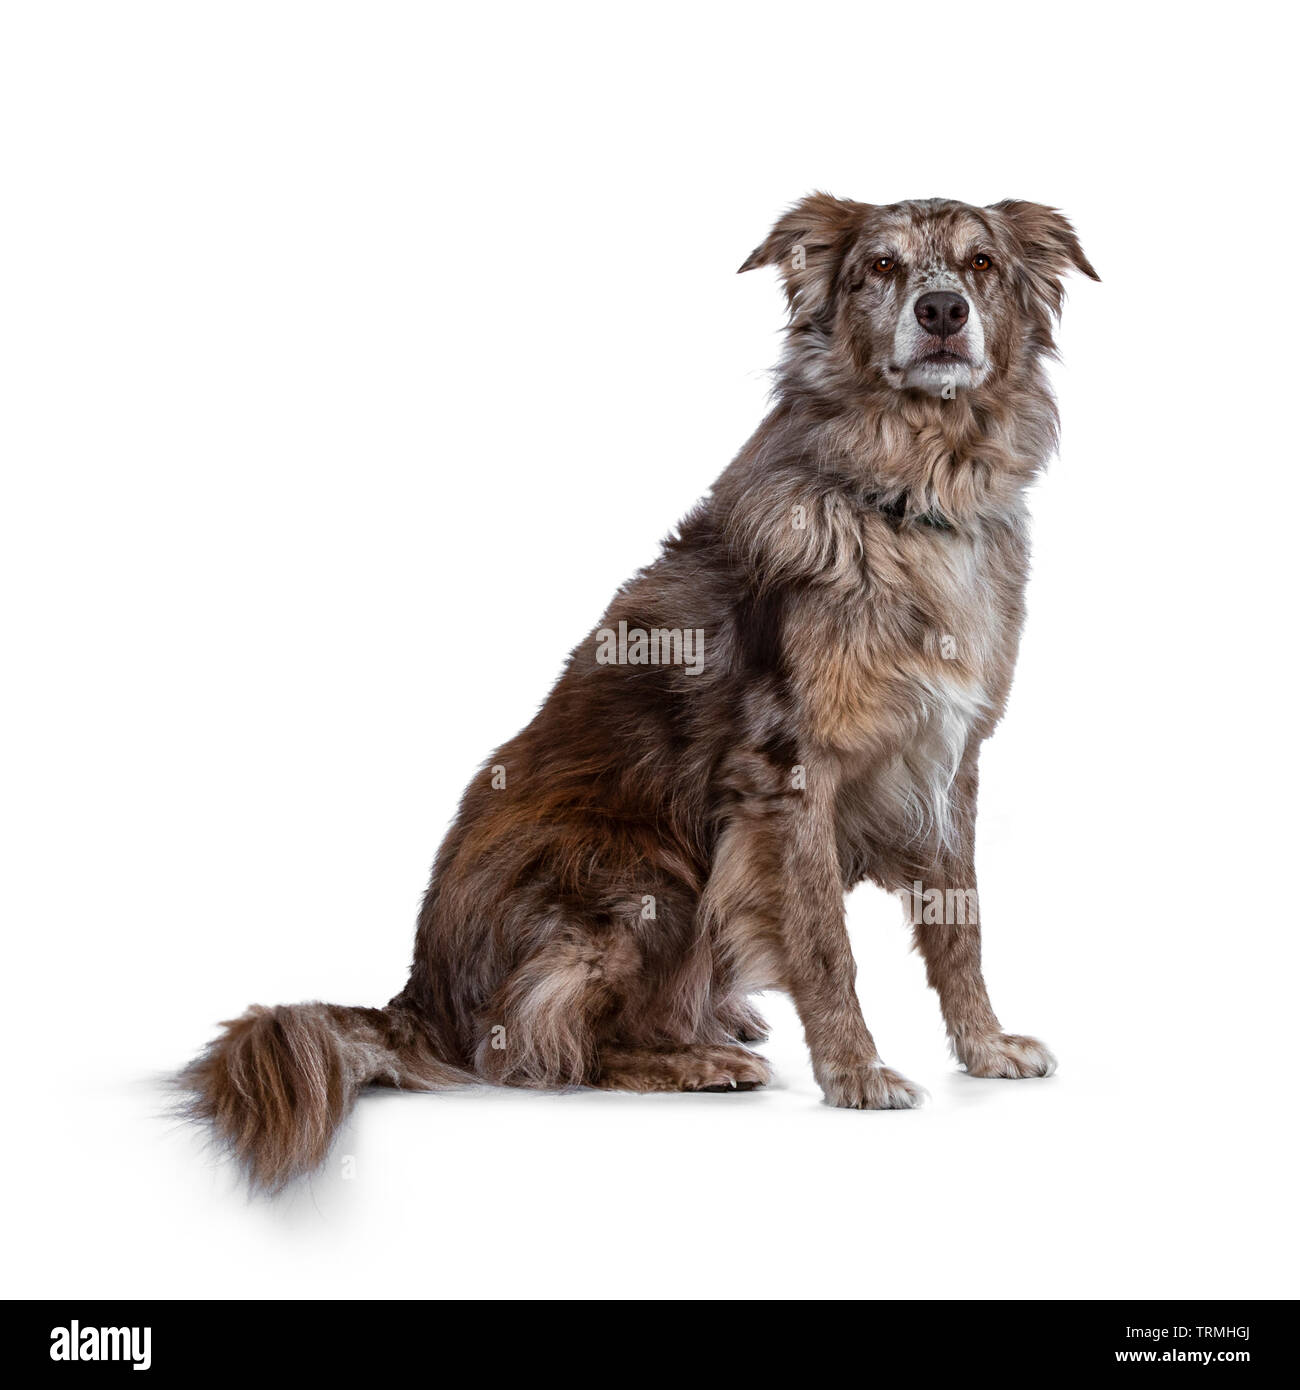 Gorgeous adult male Australian Shephard dog, sitting side ways. Looking majestic towards photographer with brown eyes. Isolated on white background. - Stock Image